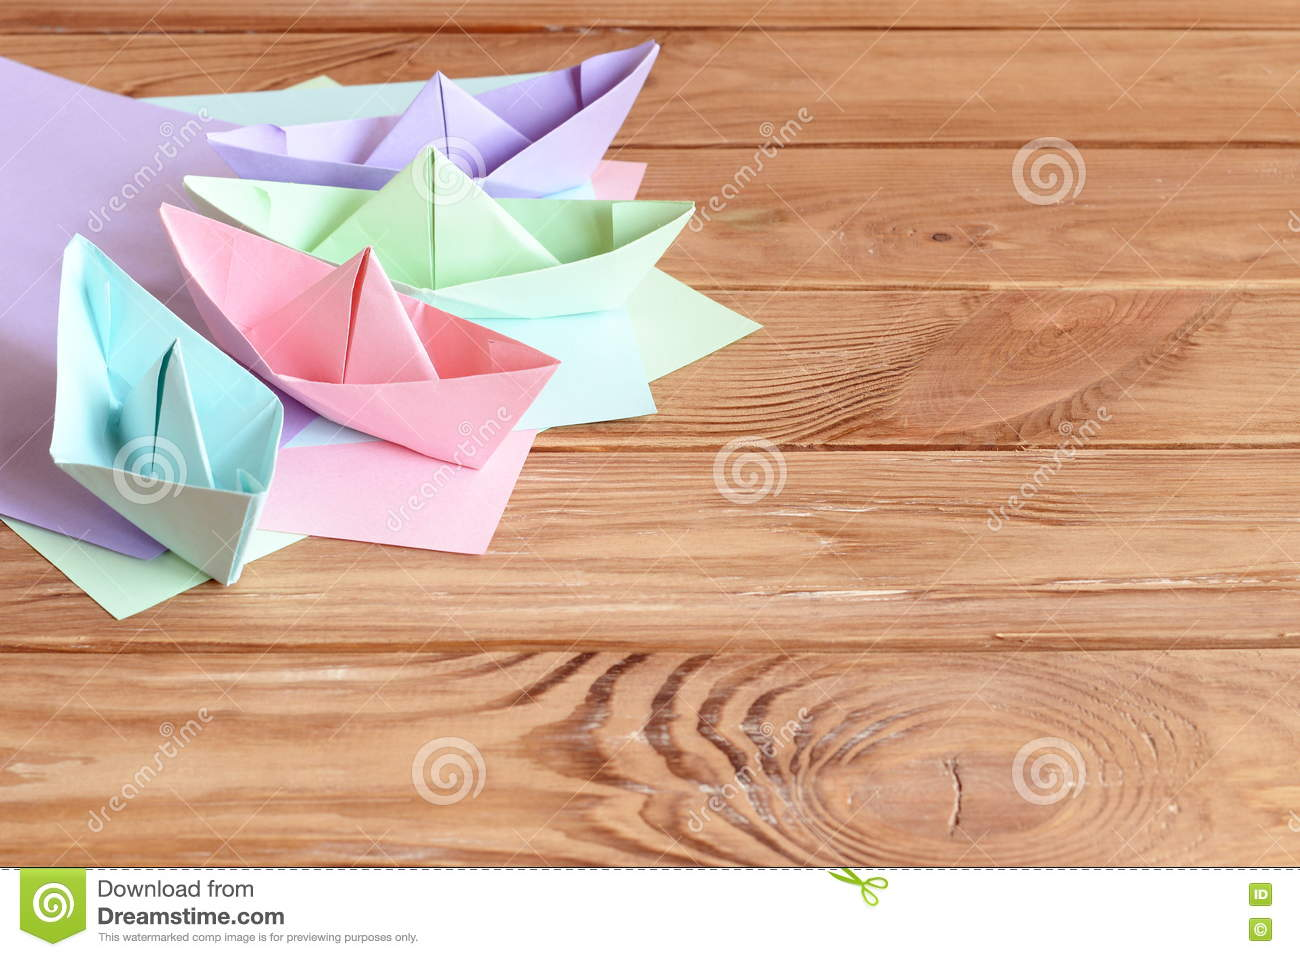 Download Colorful Ships Paper Folding Sheets Of Colored On A Wooden Table With Empty